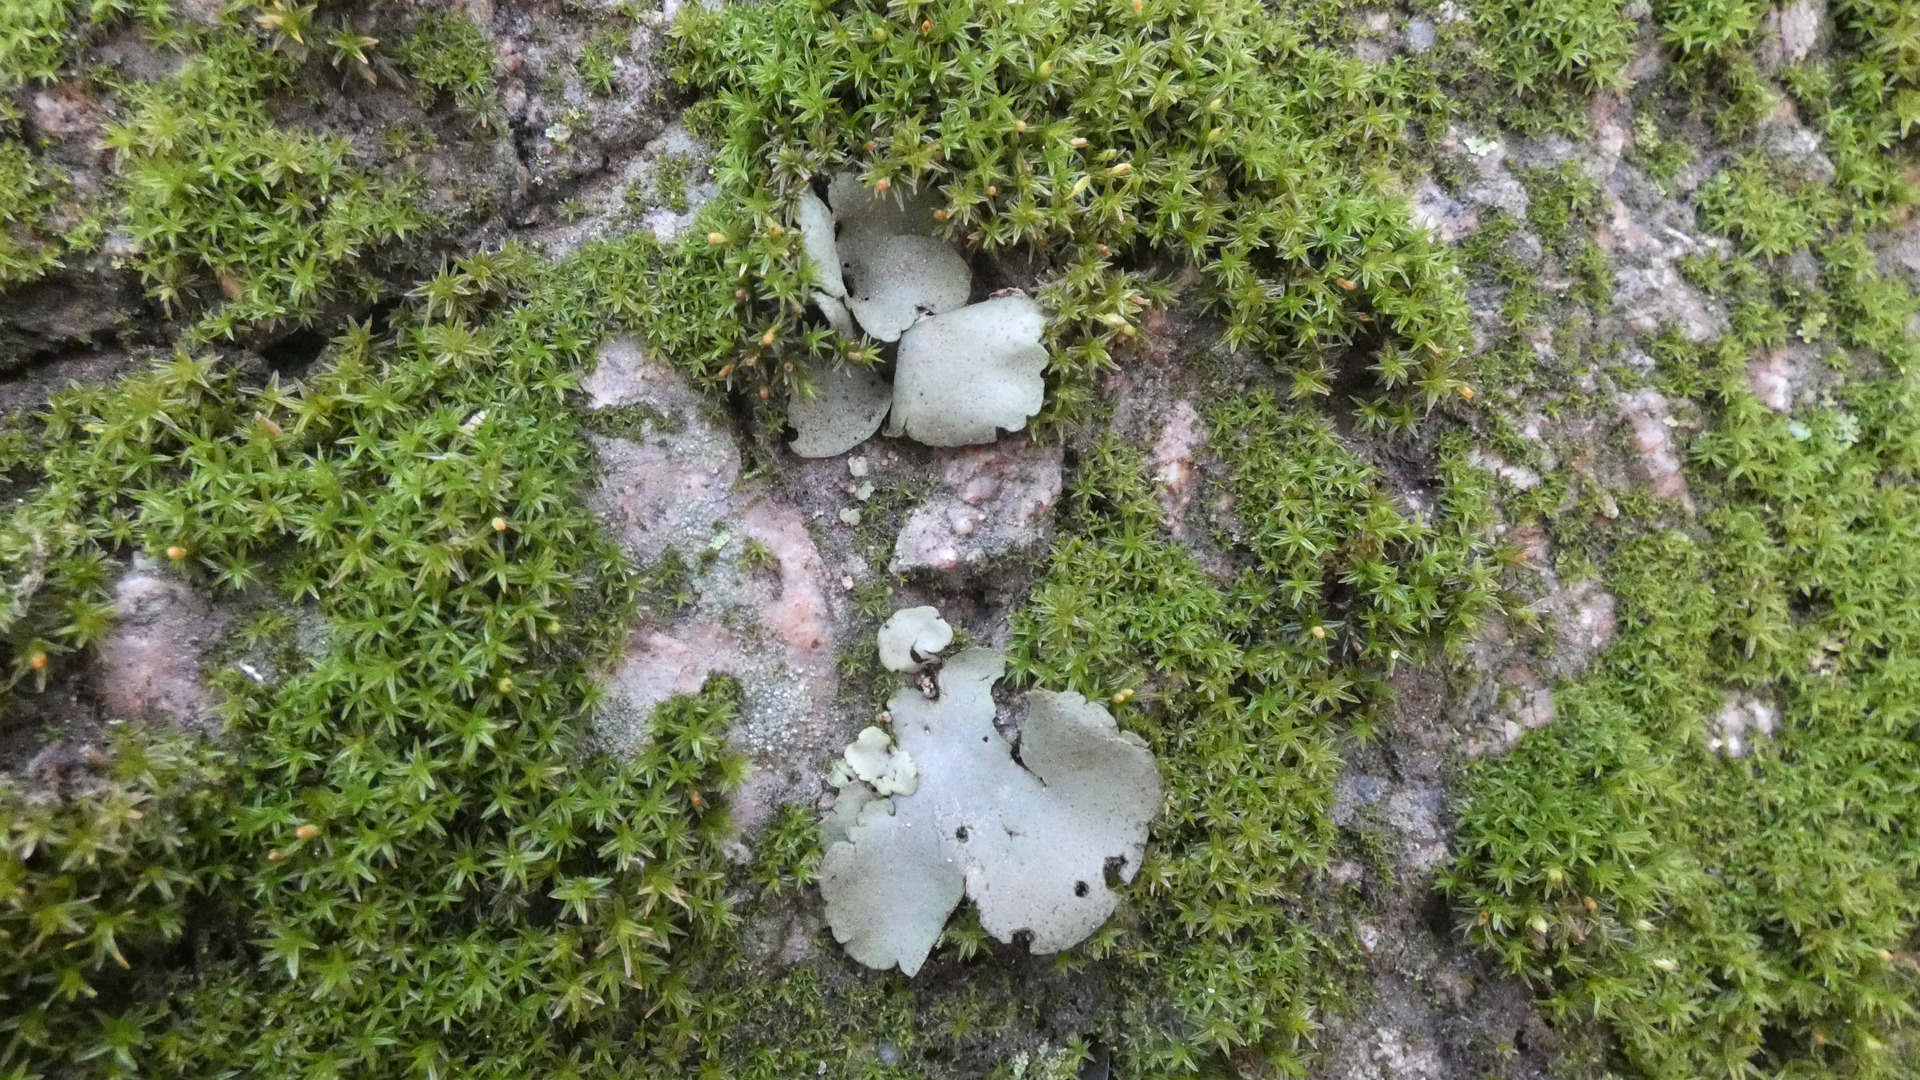 Moss on granite, with lichen at center